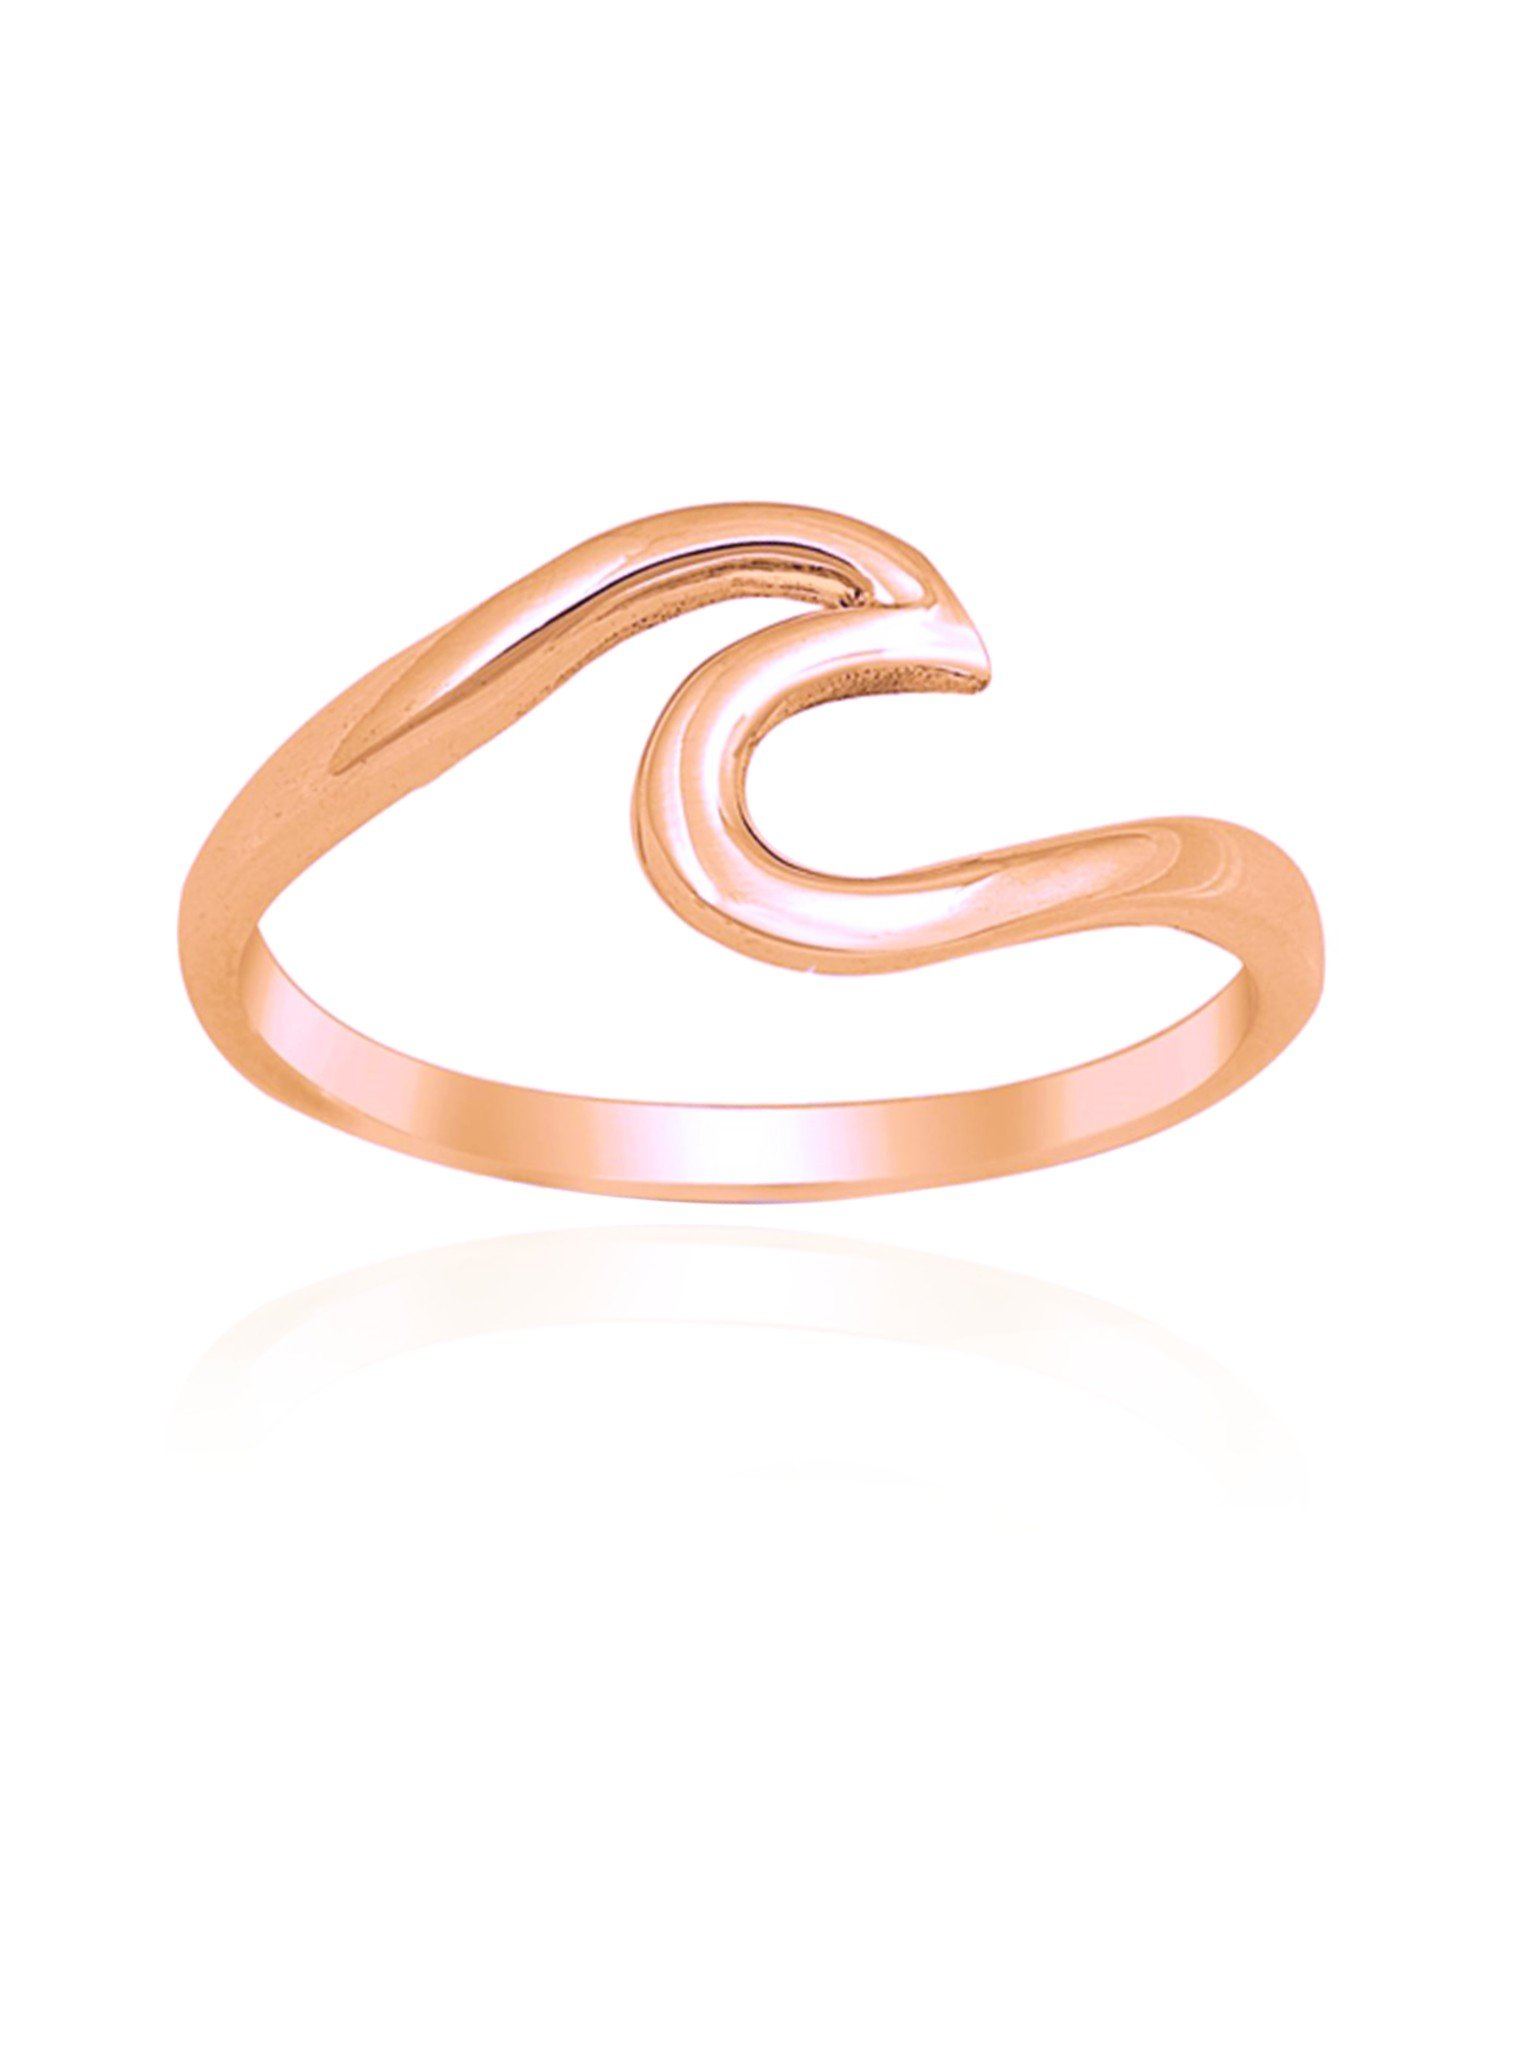 Mariana Wave Ring in Rose Gold